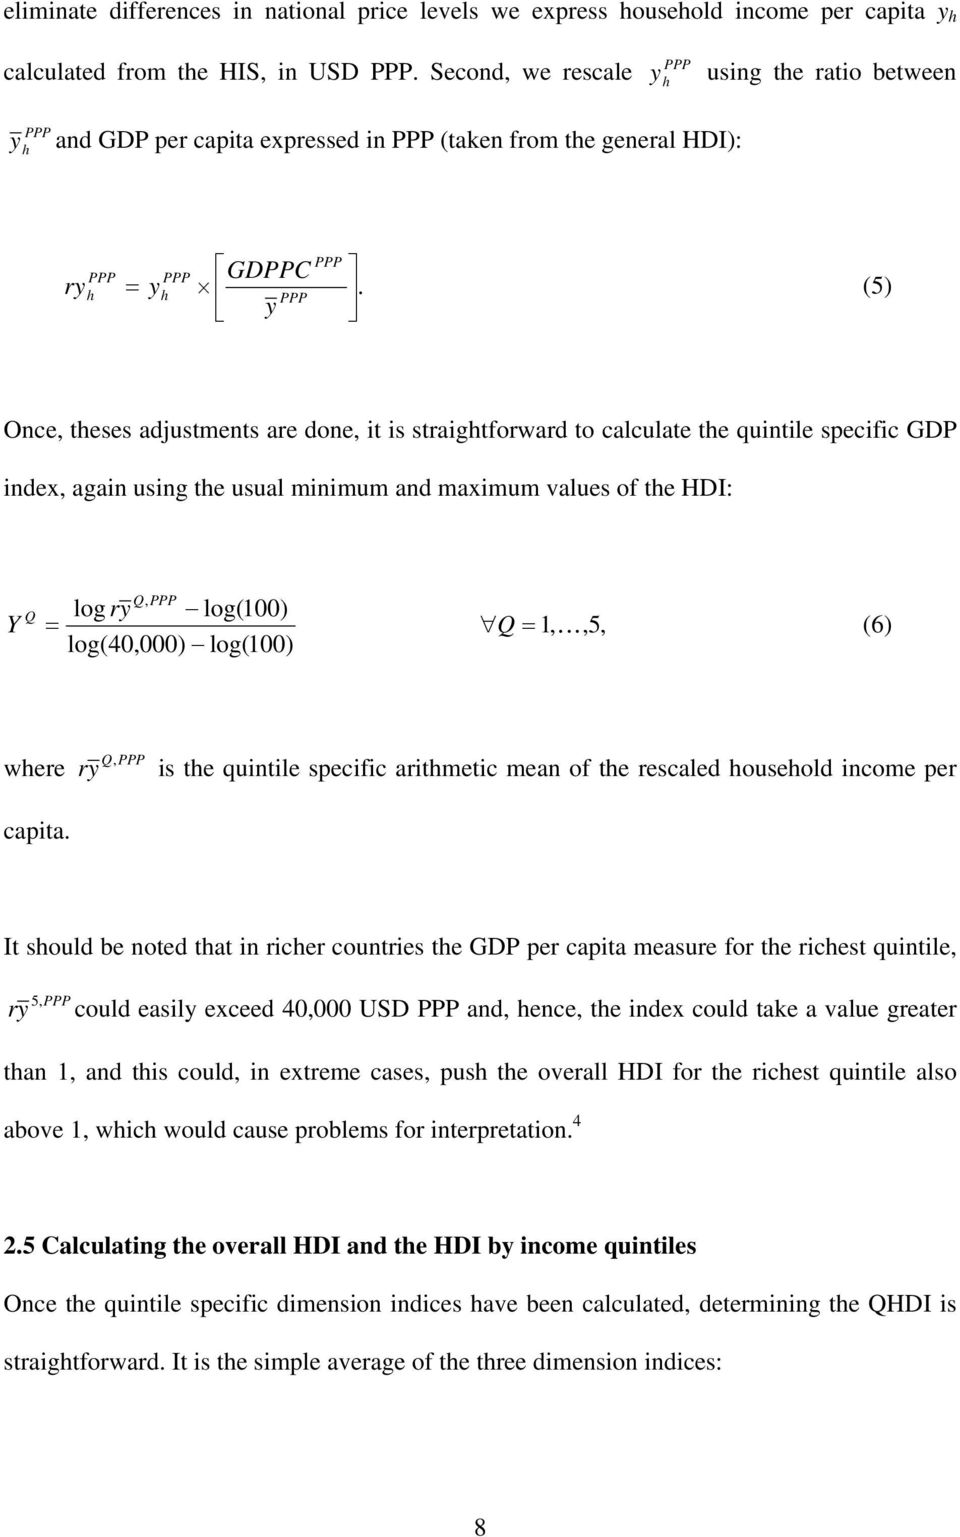 h yh (5) PPP y Once, theses adjustments are done, it is straightforward to calculate the quintile specific GDP index, again using the usual minimum and maximum values of the HDI: Q, PPP Q log ry